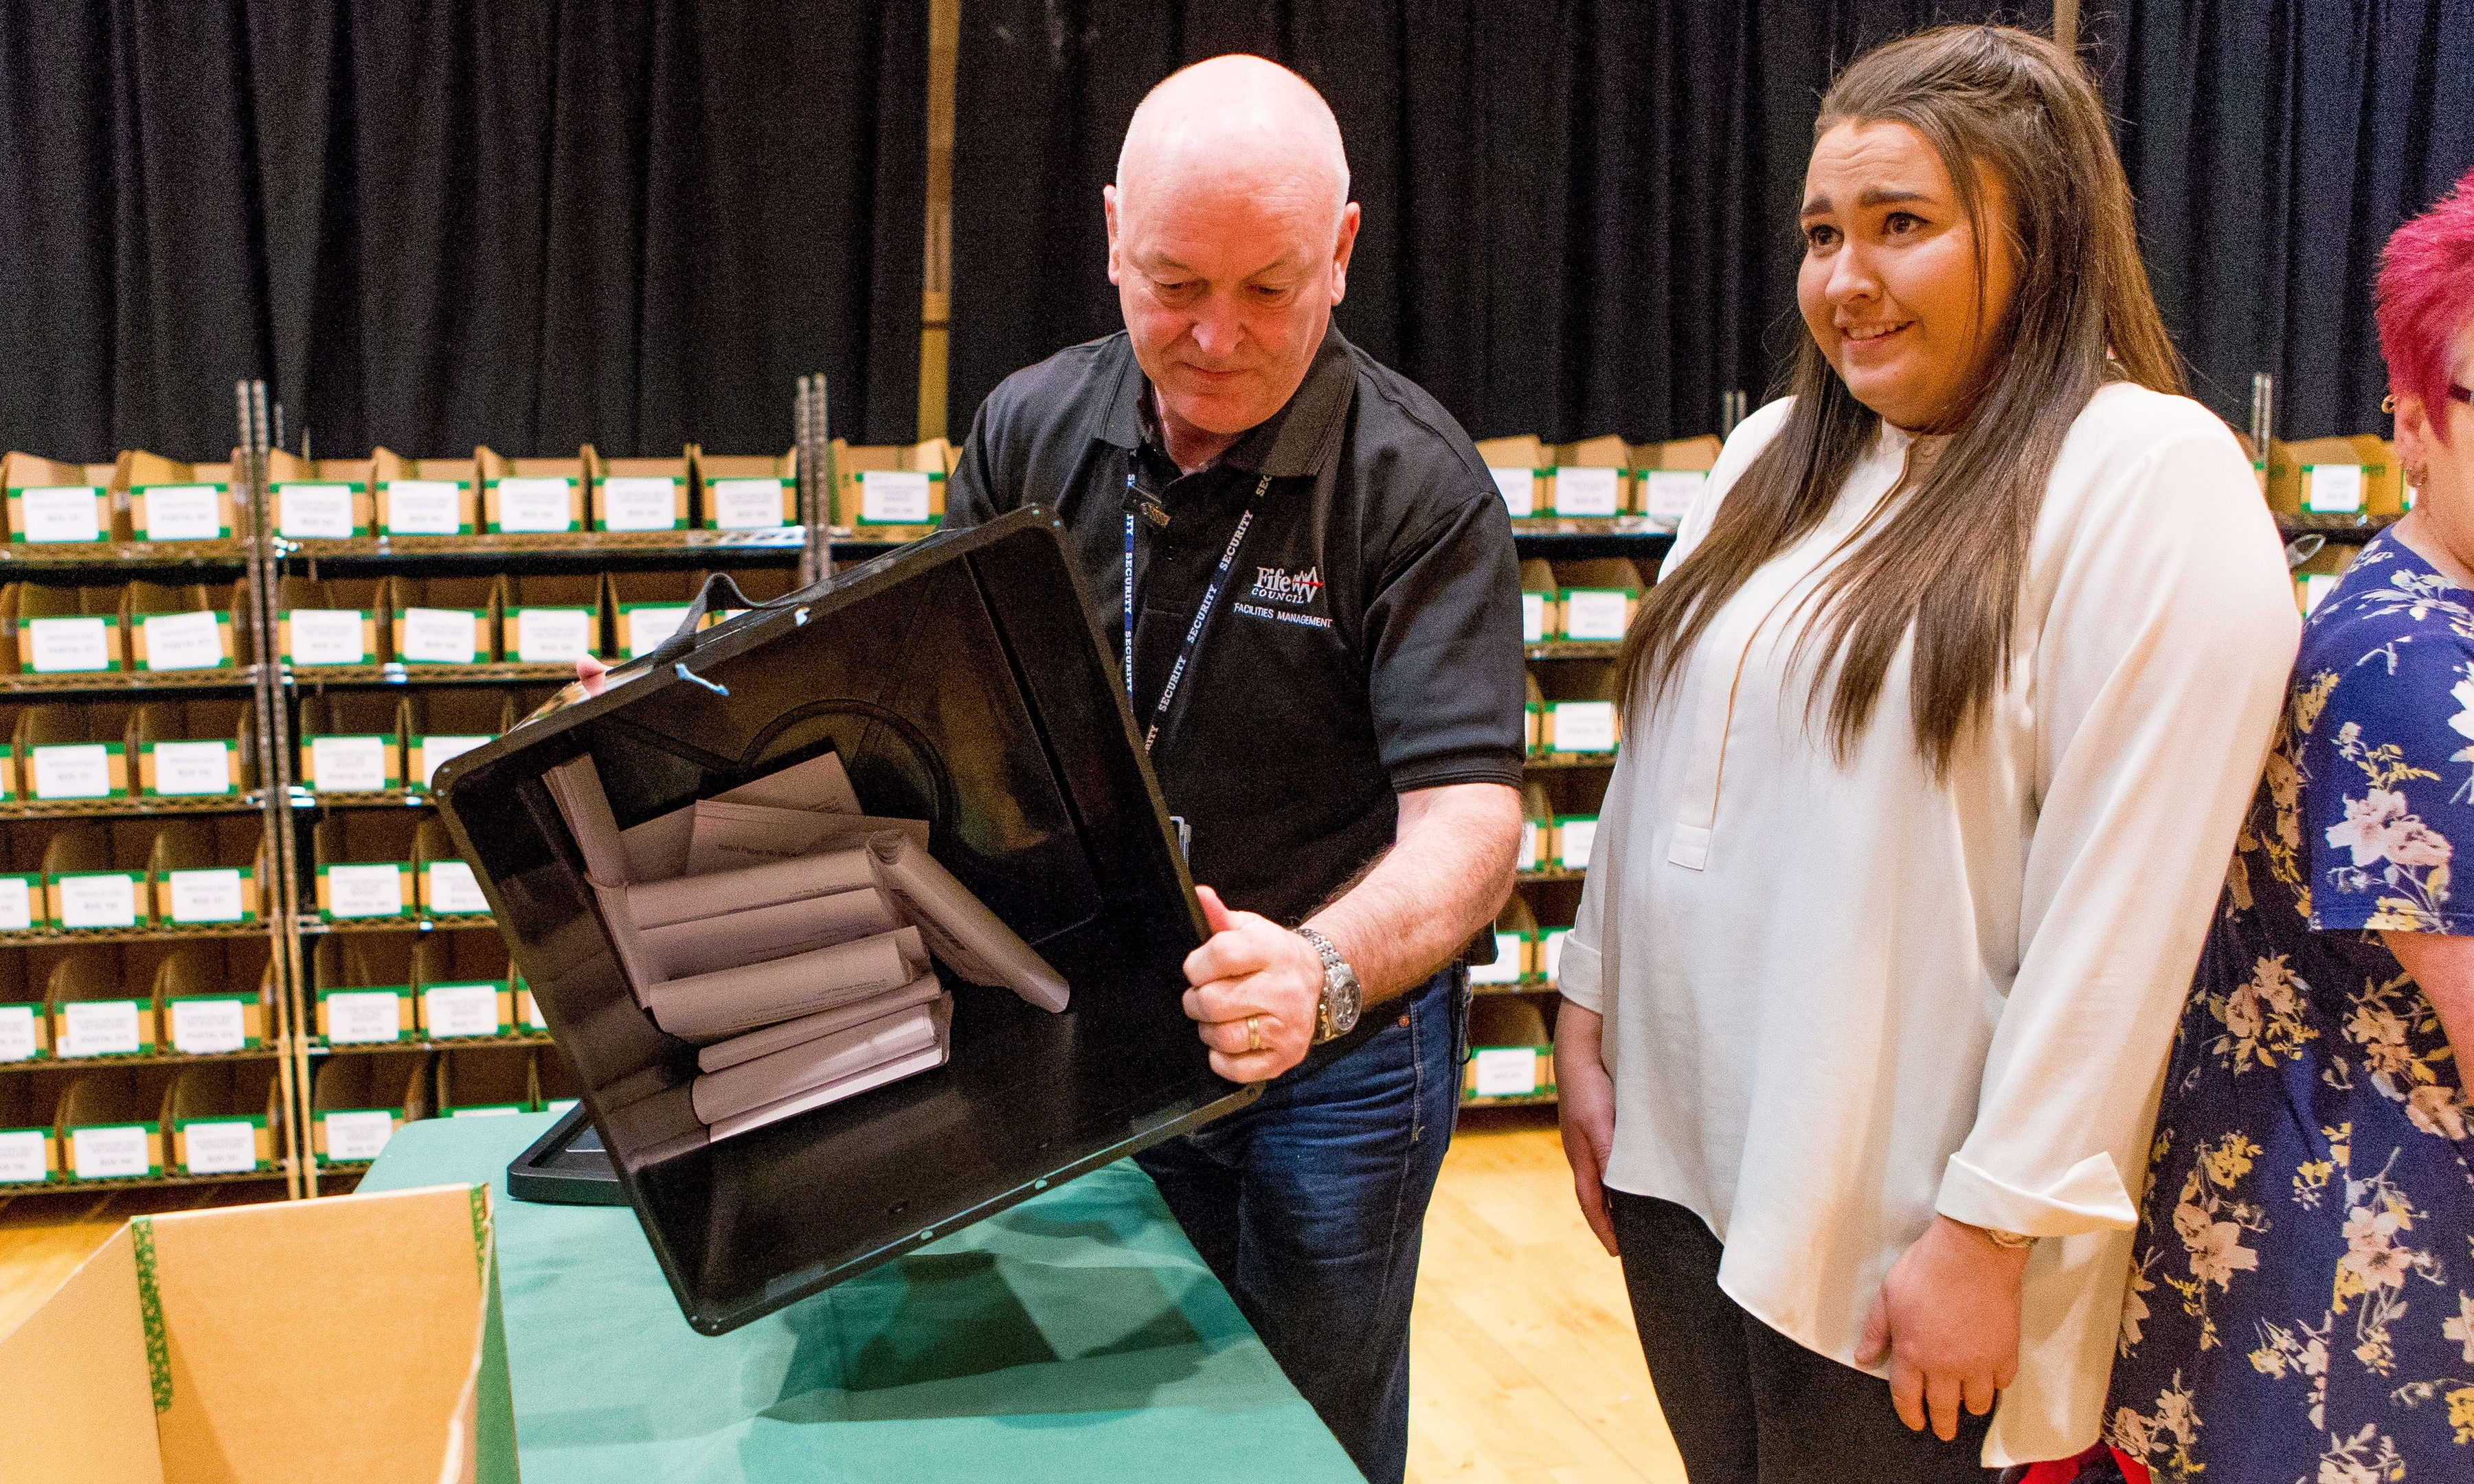 The first ballot box being opened at Rothes Halls in Glenrothes.